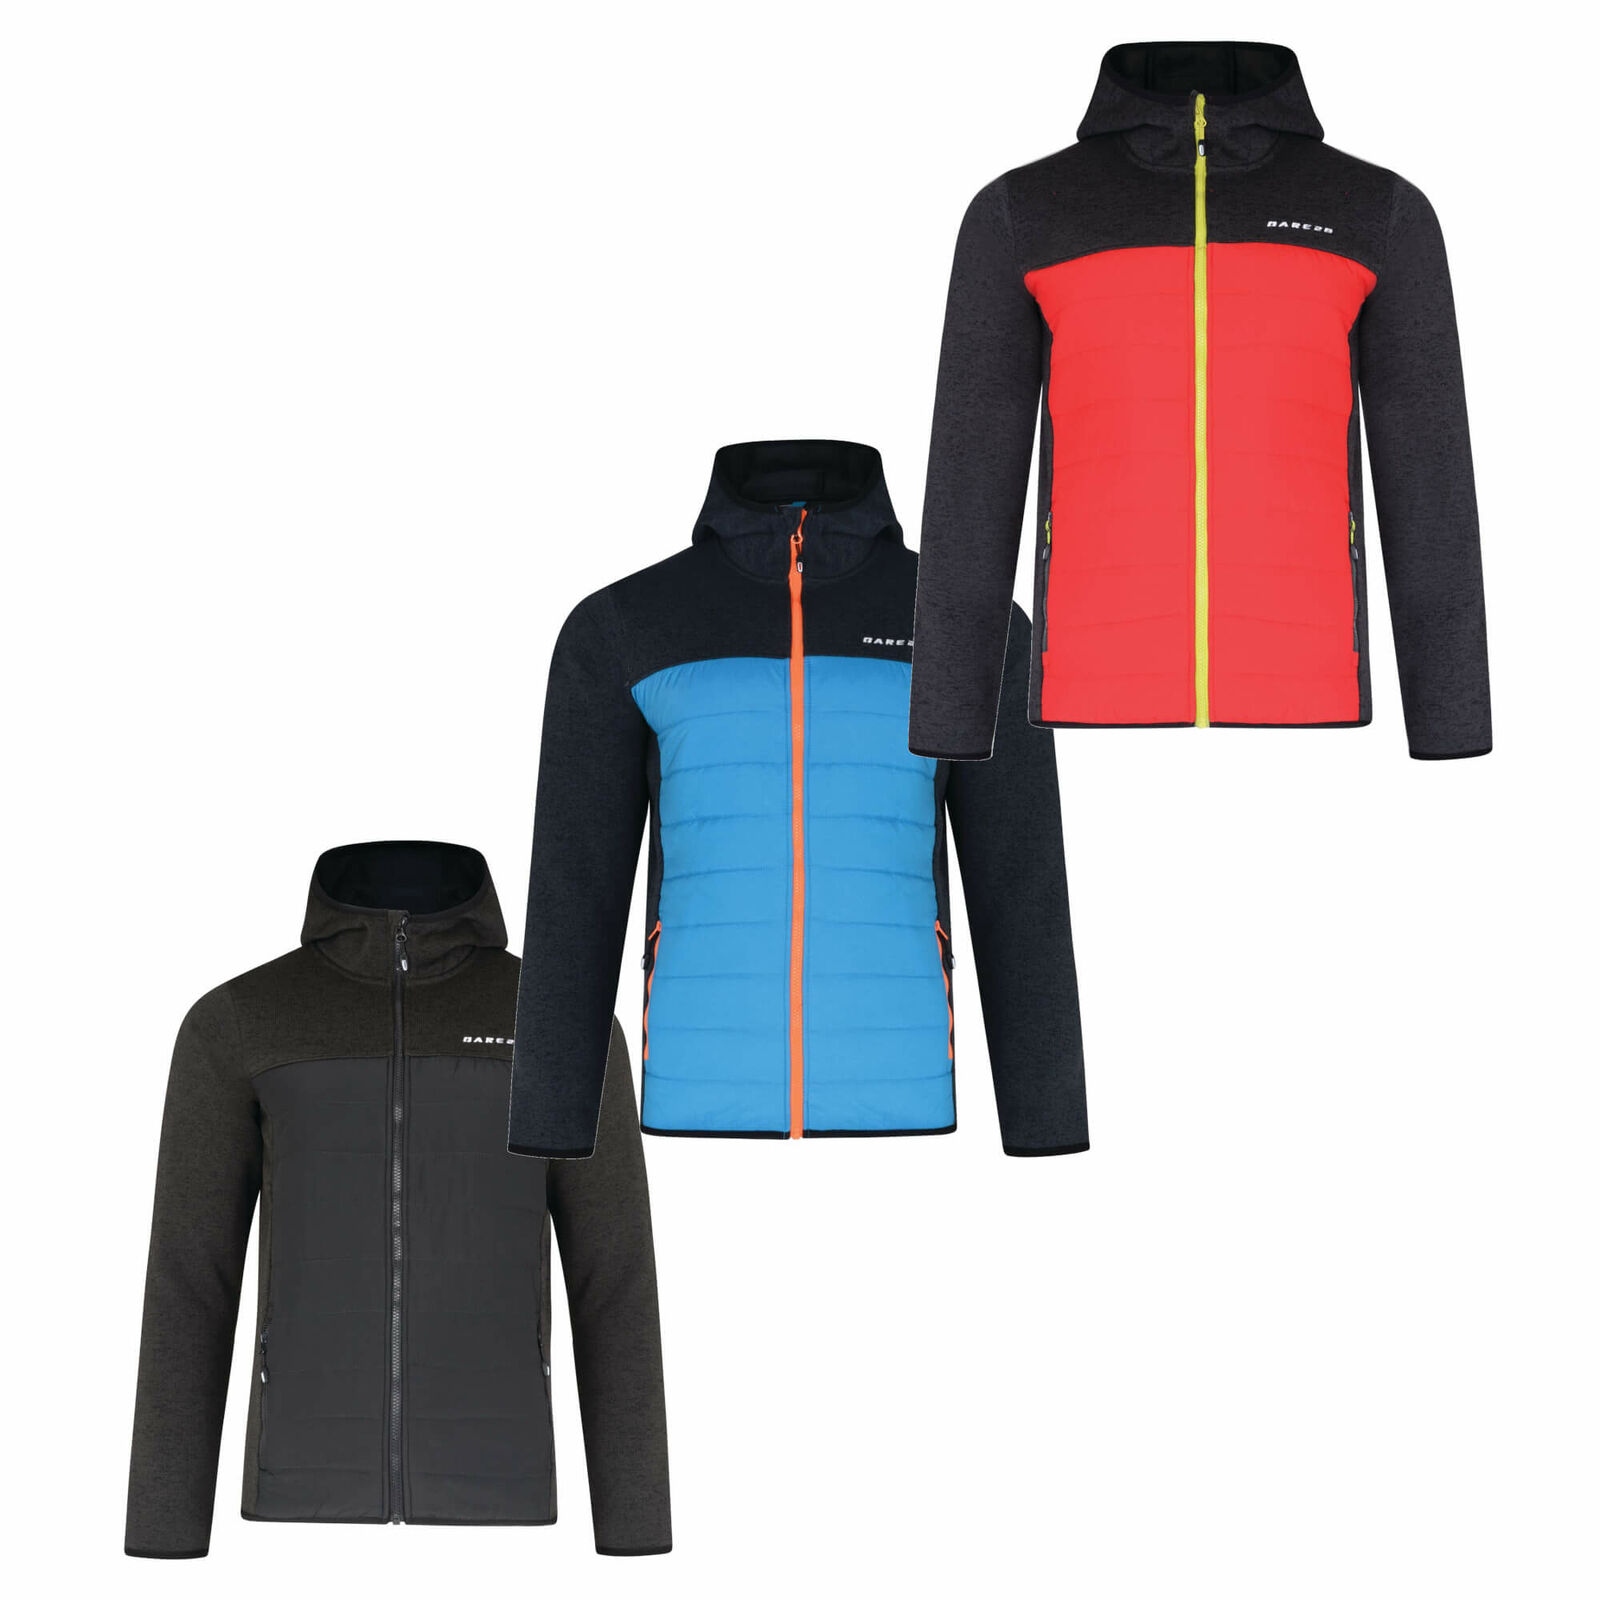 Herren Outdoor-Bekleidung Outdoorjacke Herren Softshell-Weste Stretch Hybrid Outdoorweste Bodywarmer Running Stehkragen